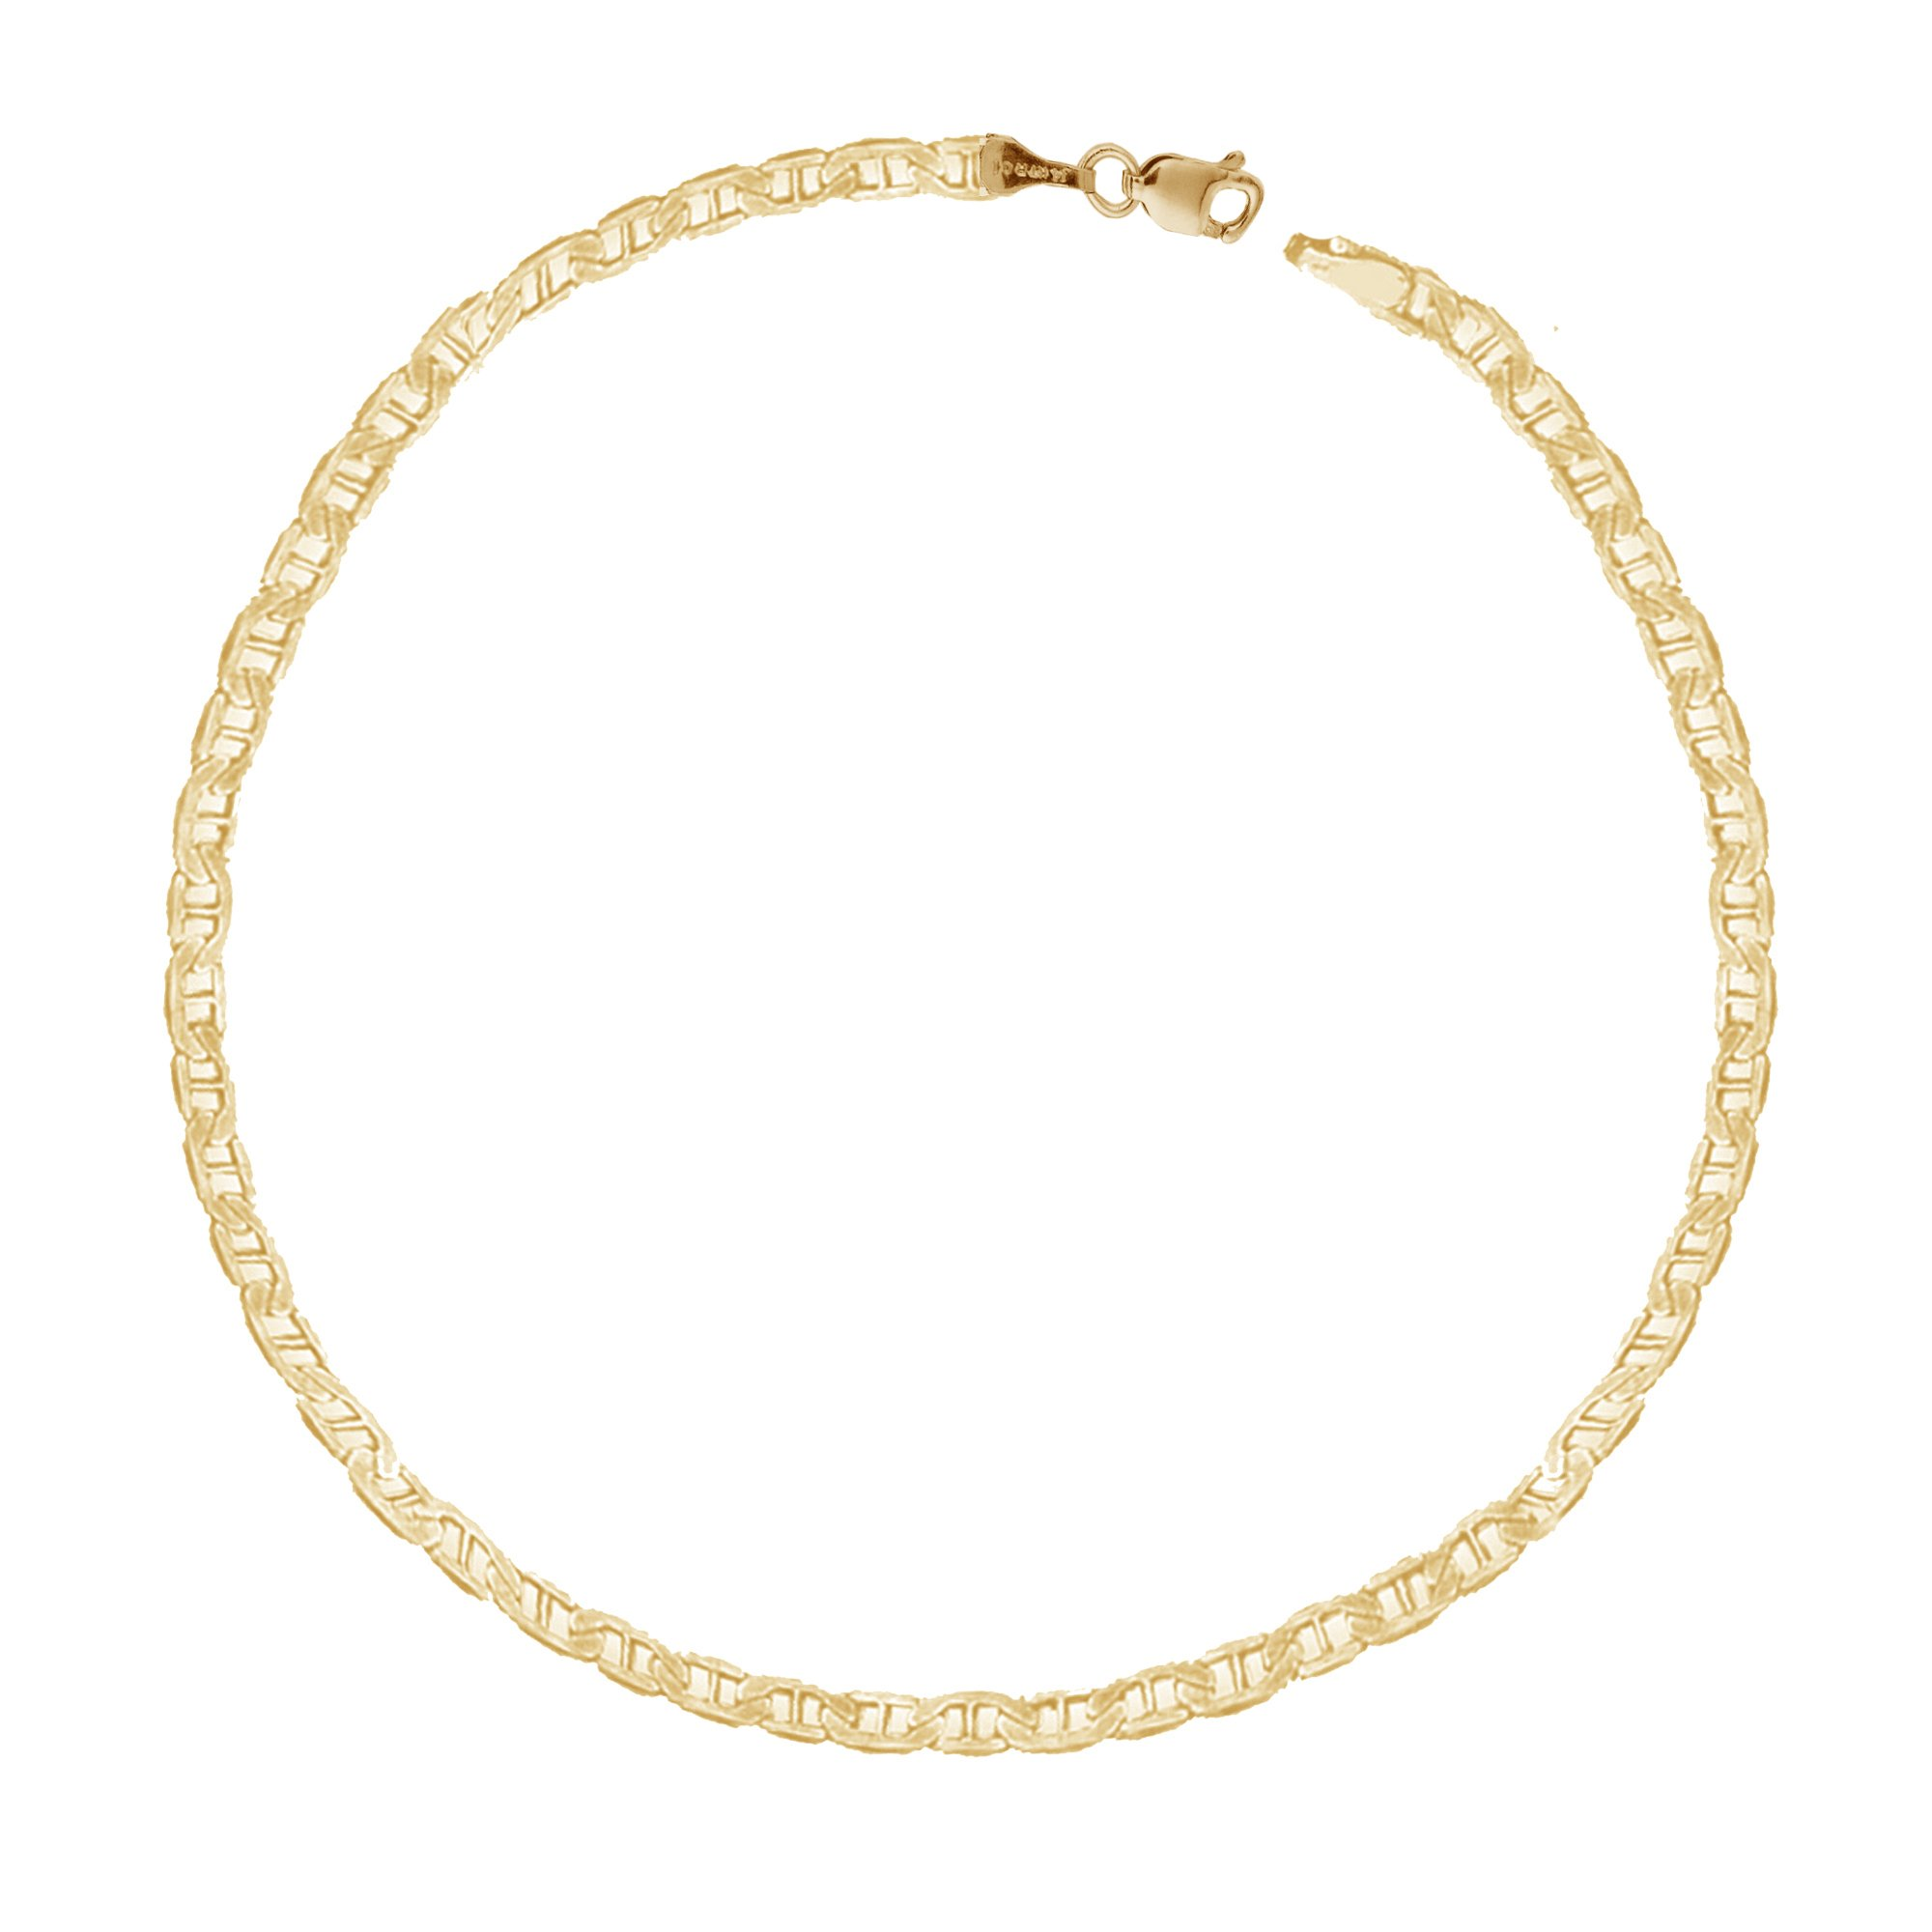 Ritastephens 14k Yellow Gold Mariner Link Chain Bracelet 3.2 Mm 7 Inches